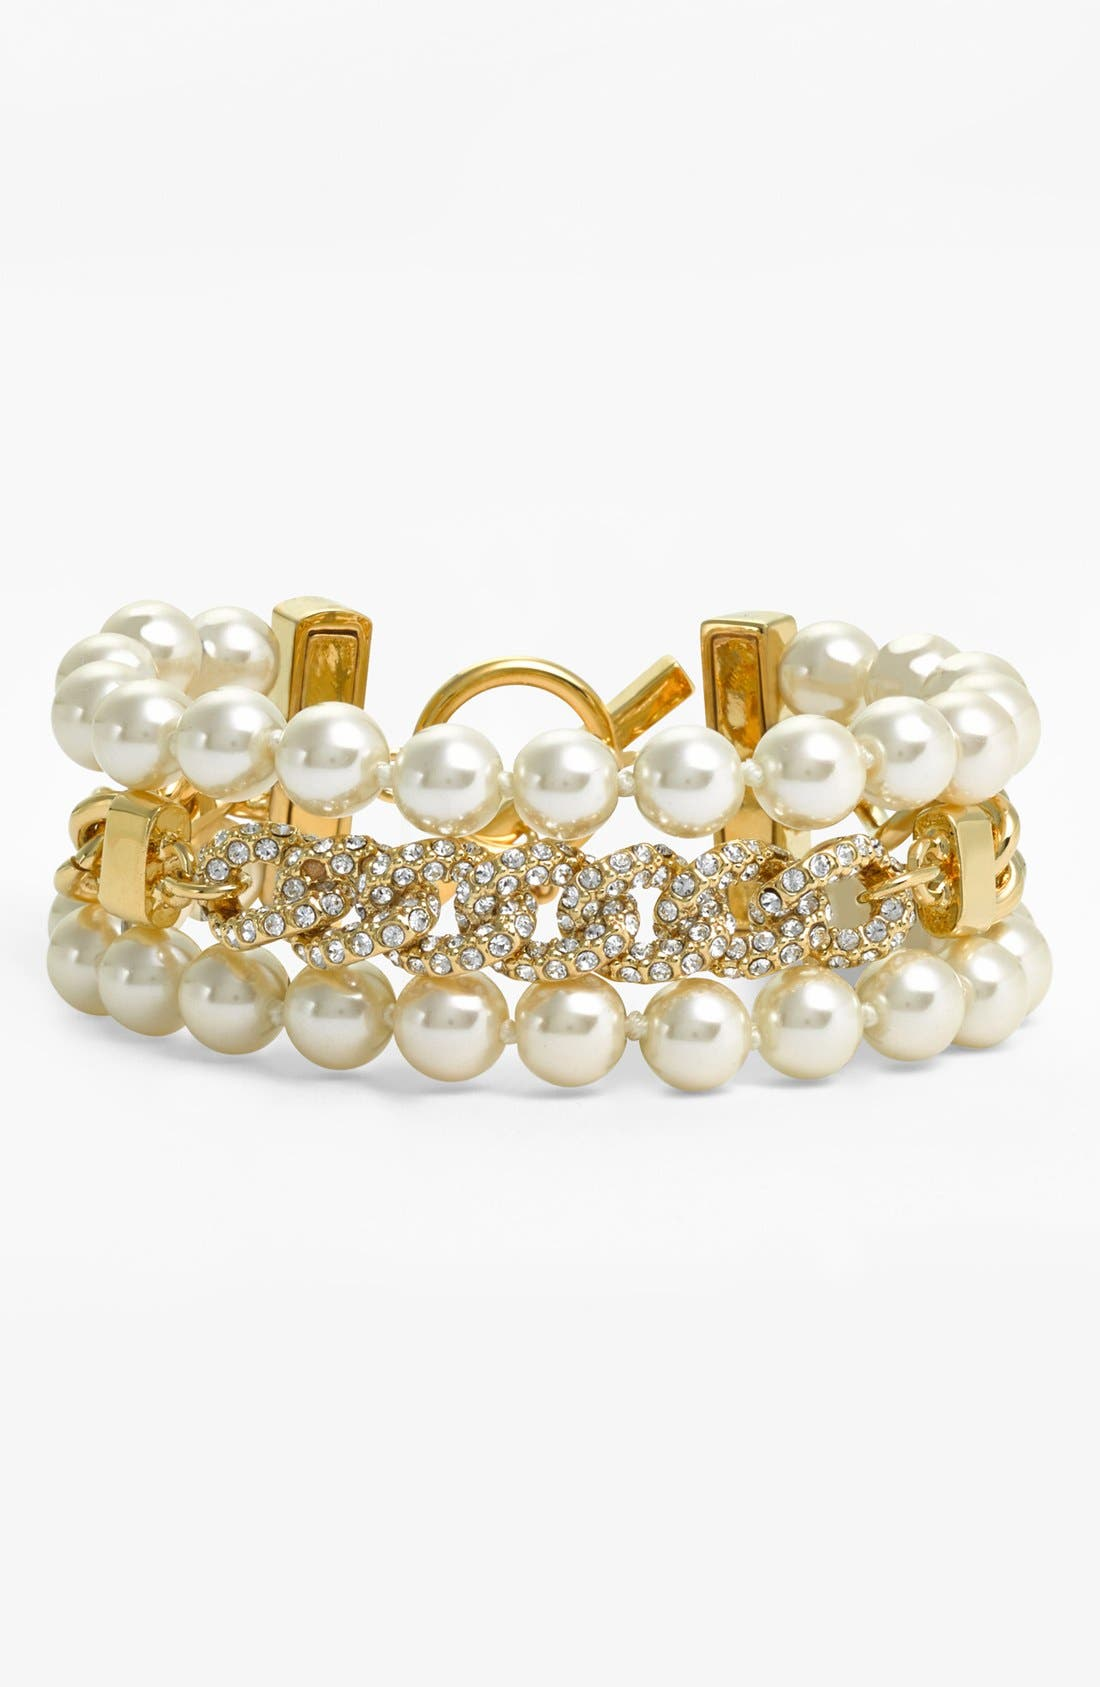 Main Image - Givenchy Glass Pearl & Chain Toggle Bracelet